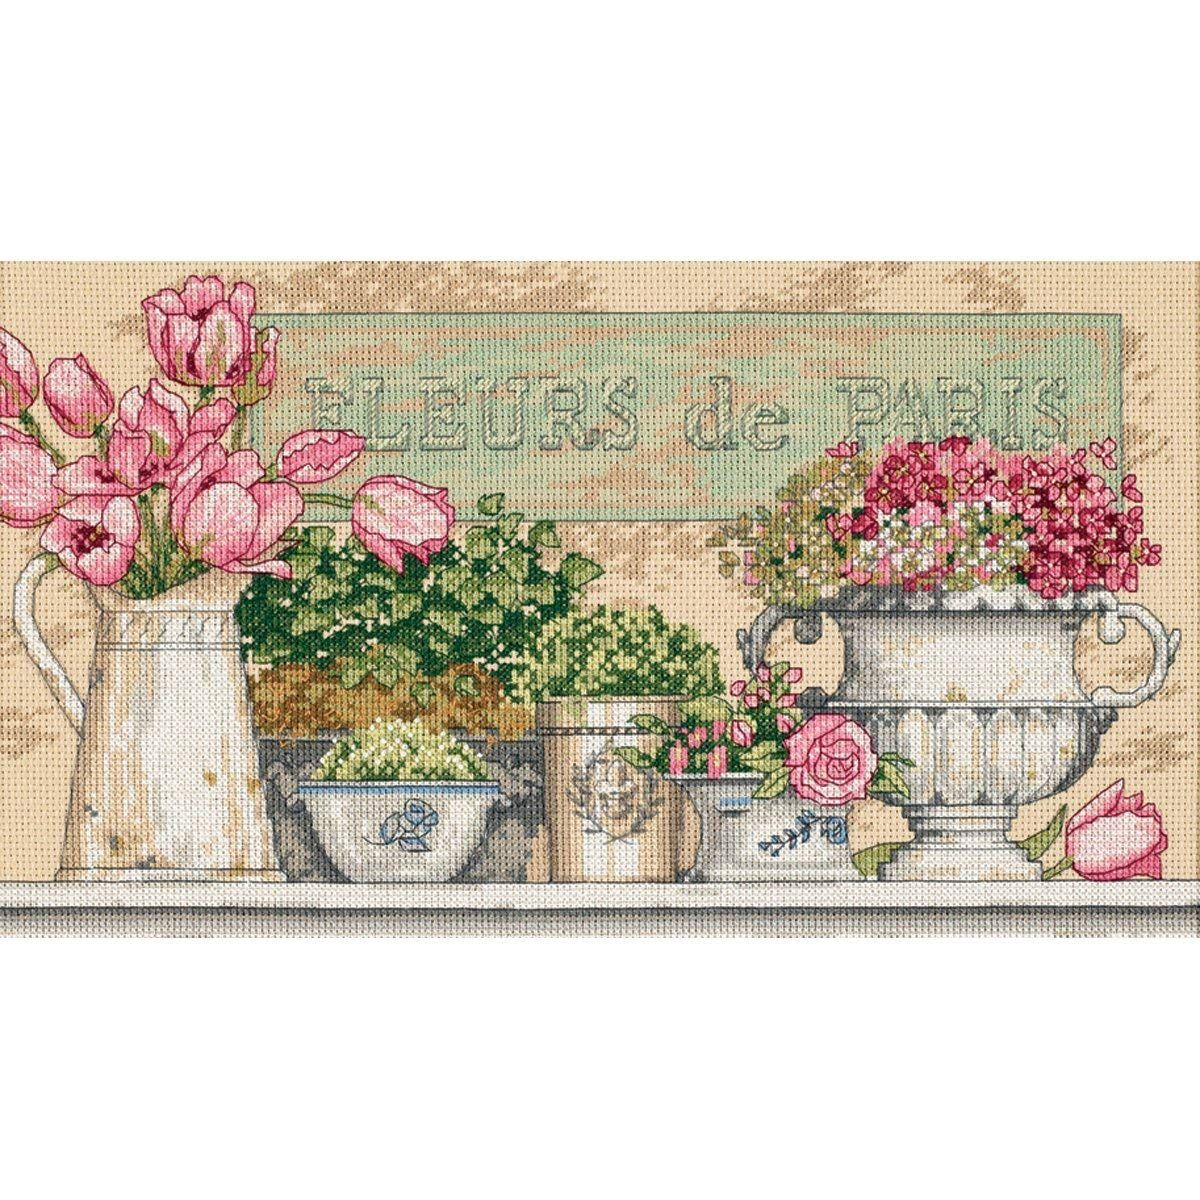 Dimensions Needlecrafts Roses On White Chair Counted Cross Stitch Kit